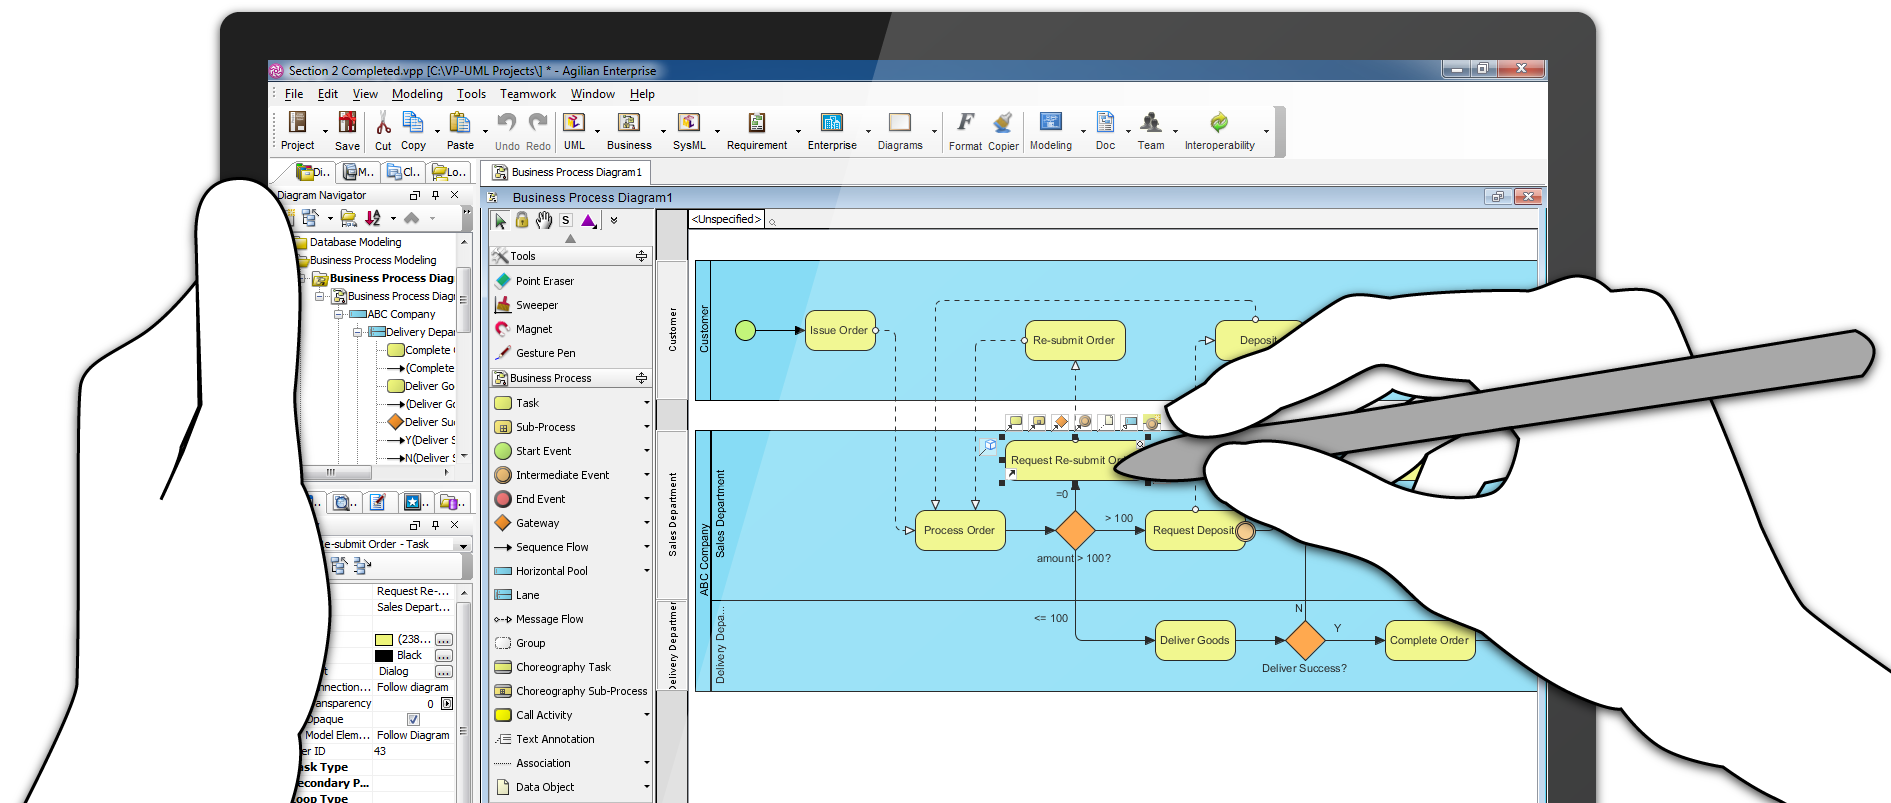 Business Process Modeling Archives - Visual Paradigm Know-how